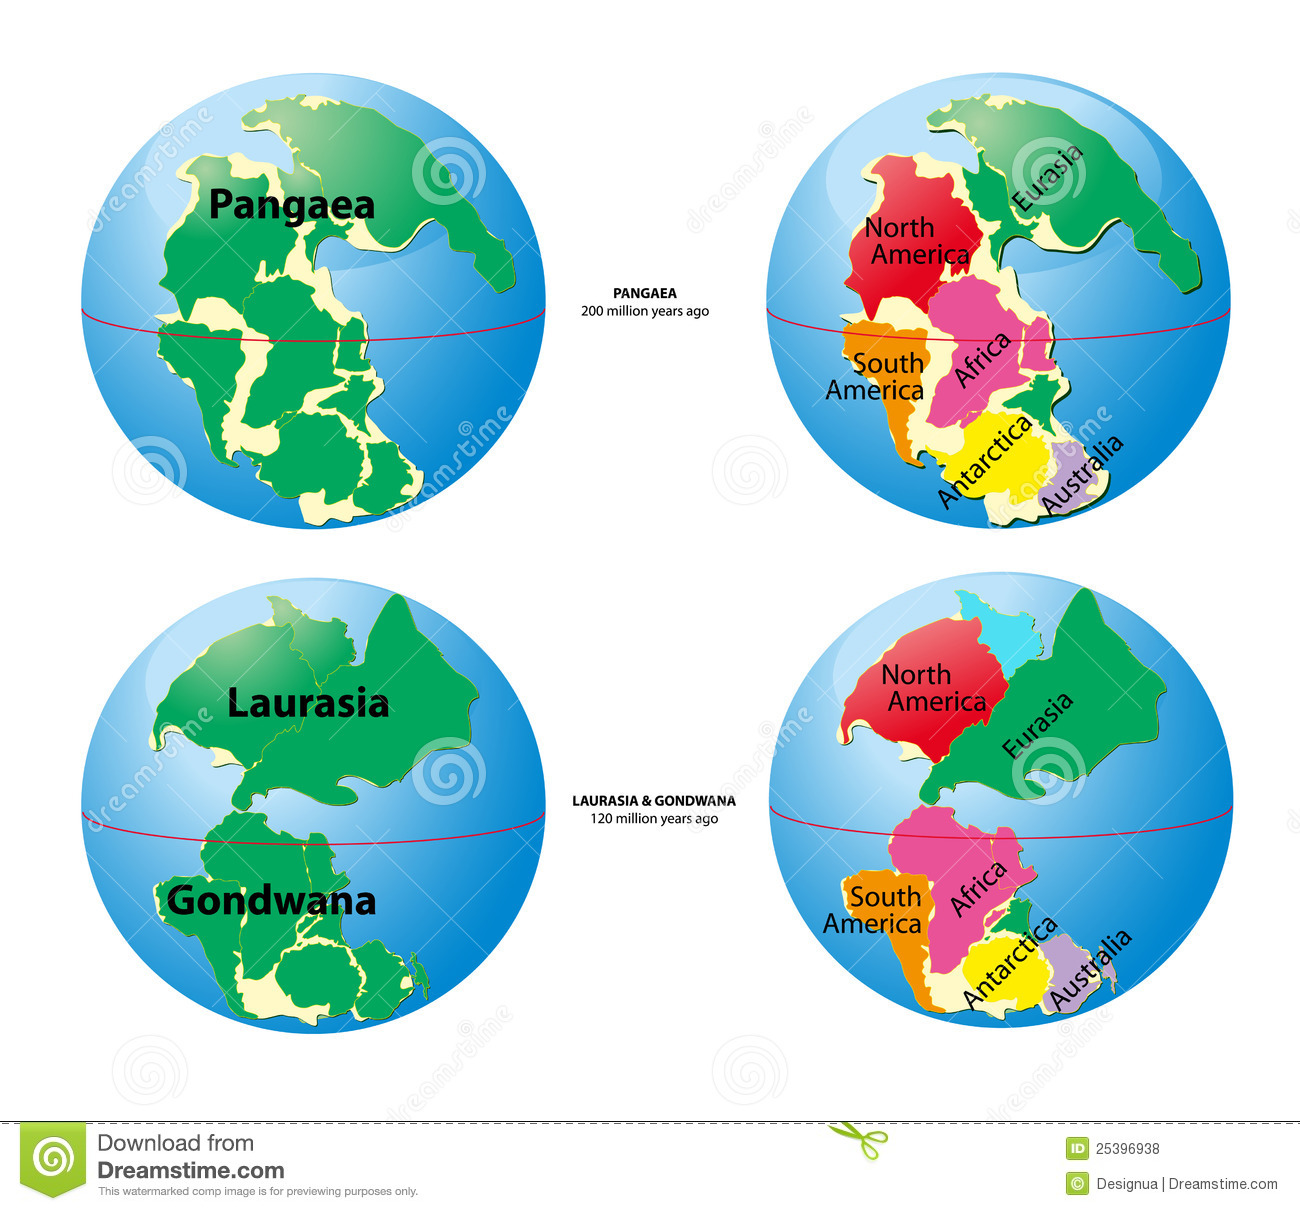 Pangaea Tectonic Plates Worksheet